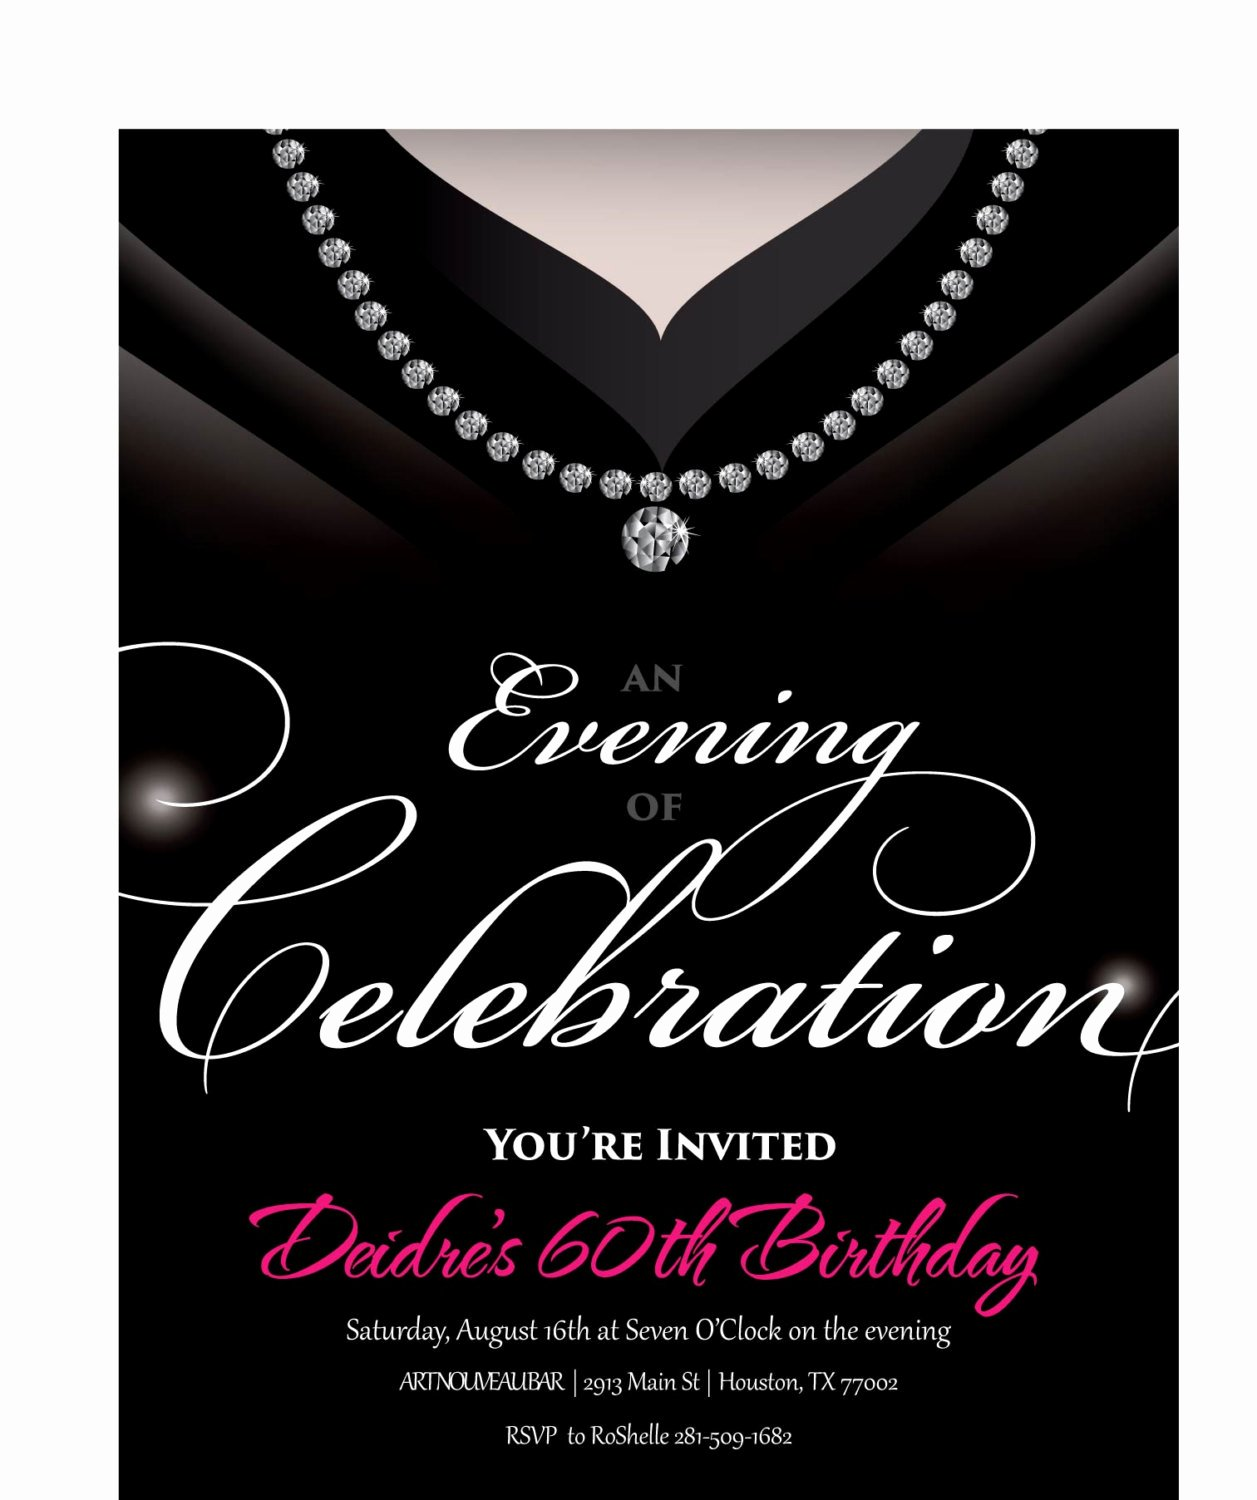 Birthday Invitations for Women Luxury Gown Invitation • Birthday Party Invite for Women • Unique and Classy Adult Birthday Invitations